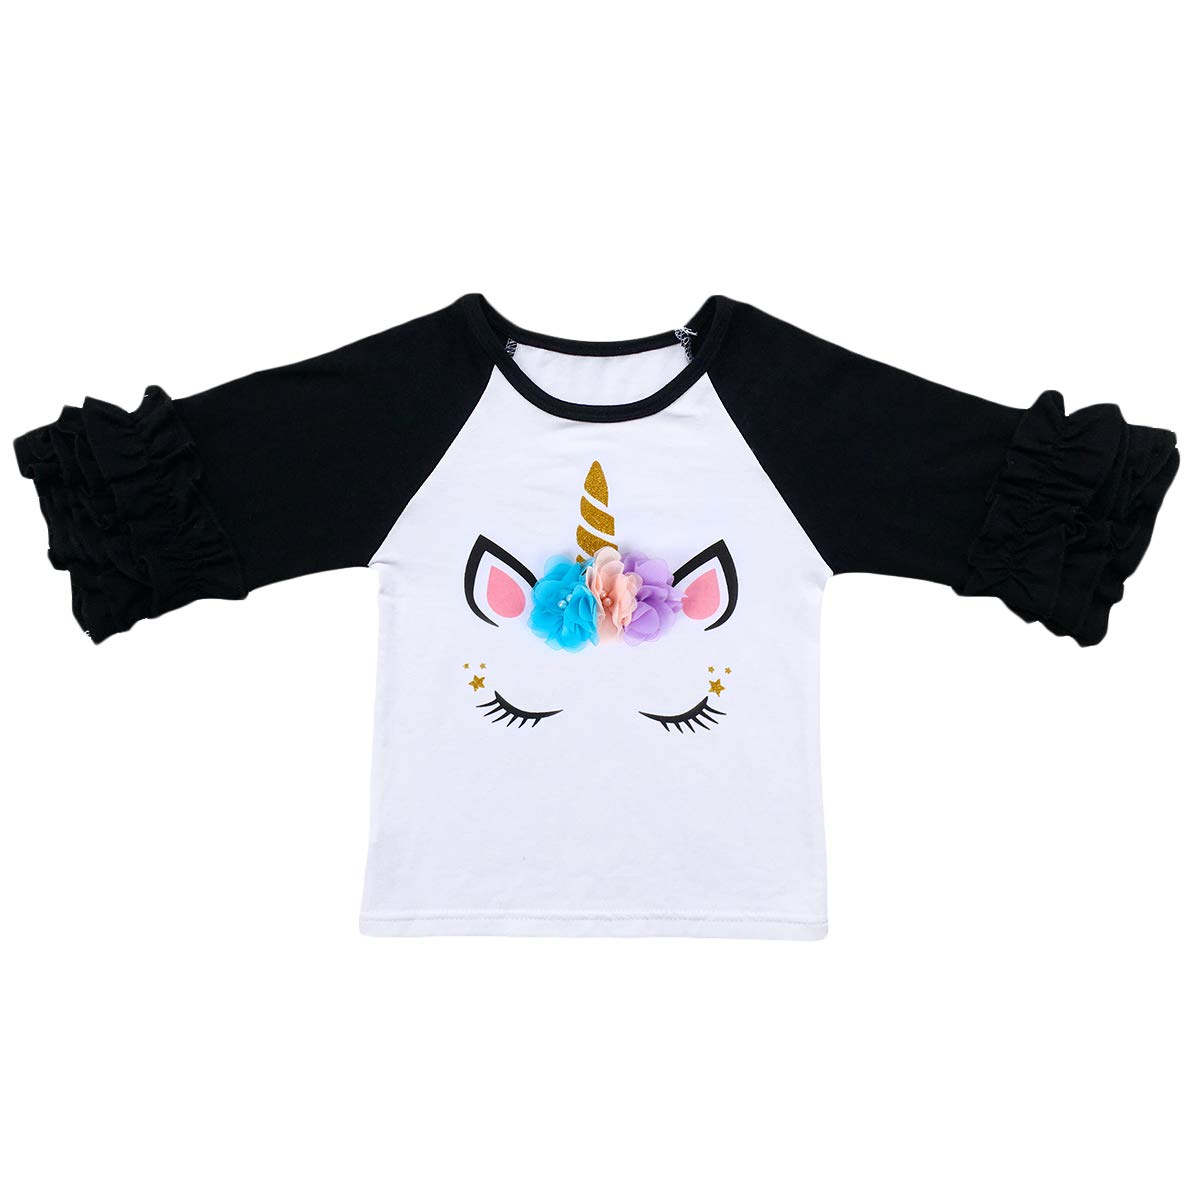 14c46d4a Amazon.com: Unicorn Shirt for Toddler Little Girls Icing Ruffle T-Shirt 3/4  Sleeves Baseball Tees Baby Cotton Tops Birthday Clothes: Clothing